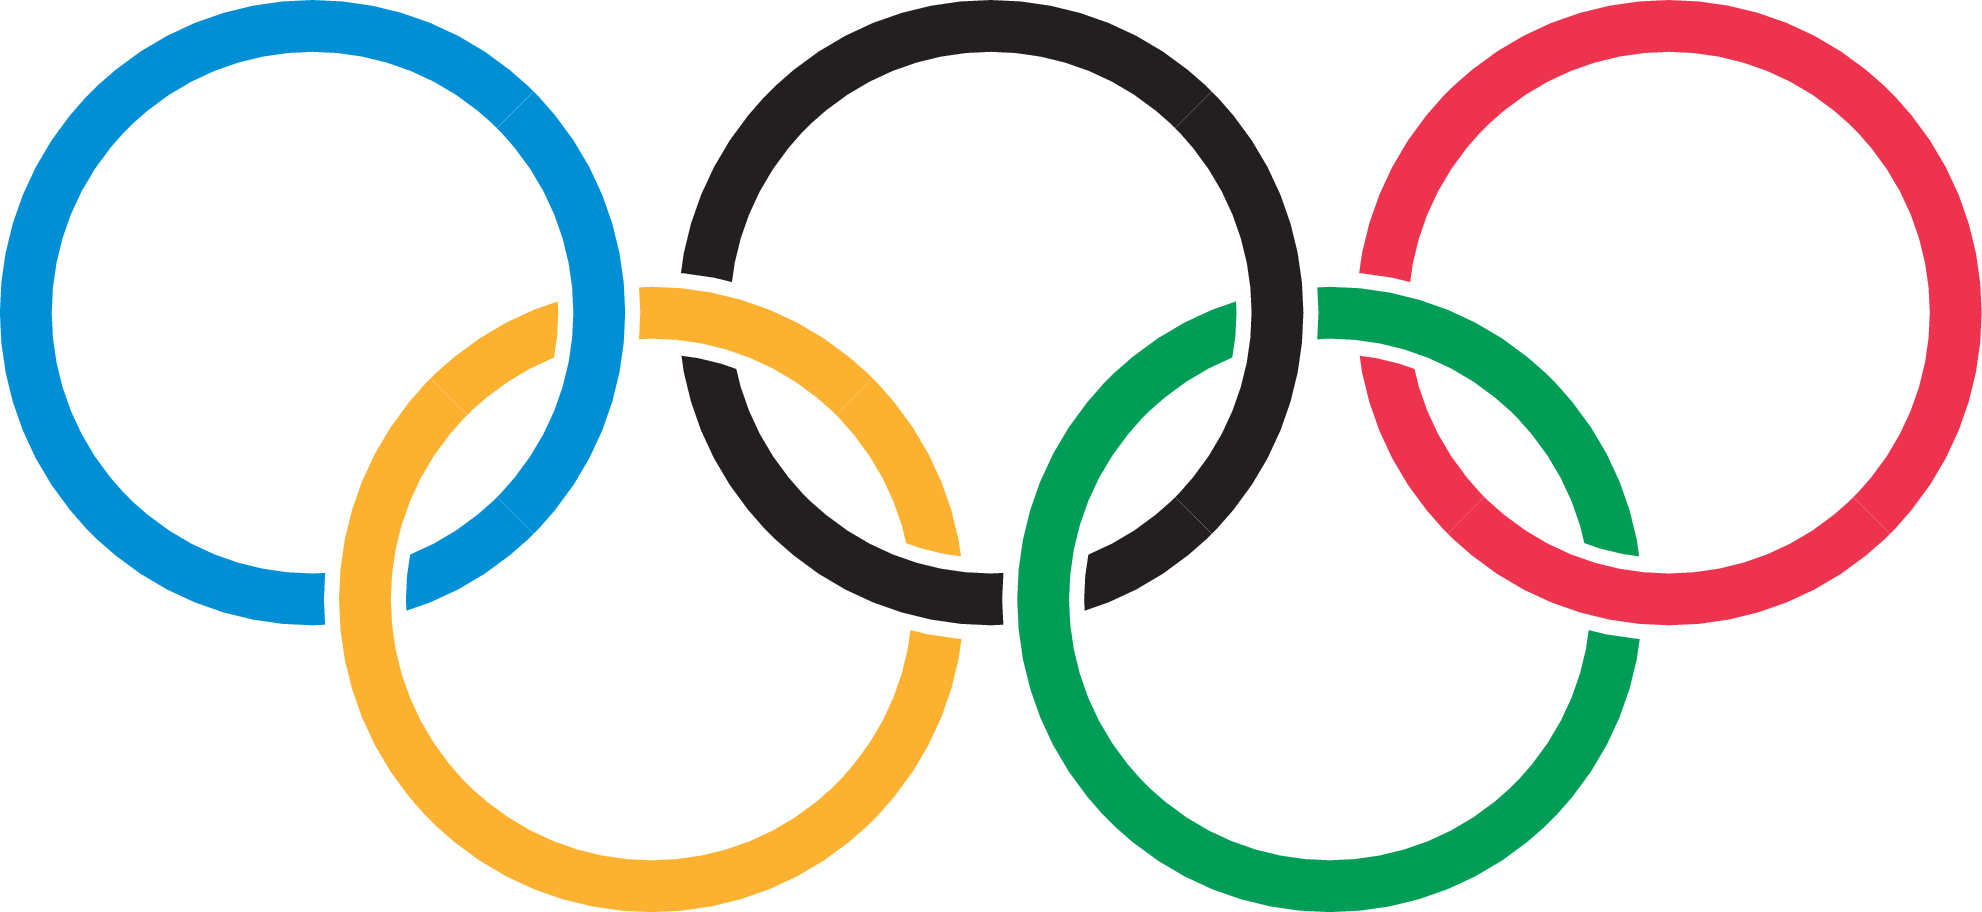 Olympic Games 2016